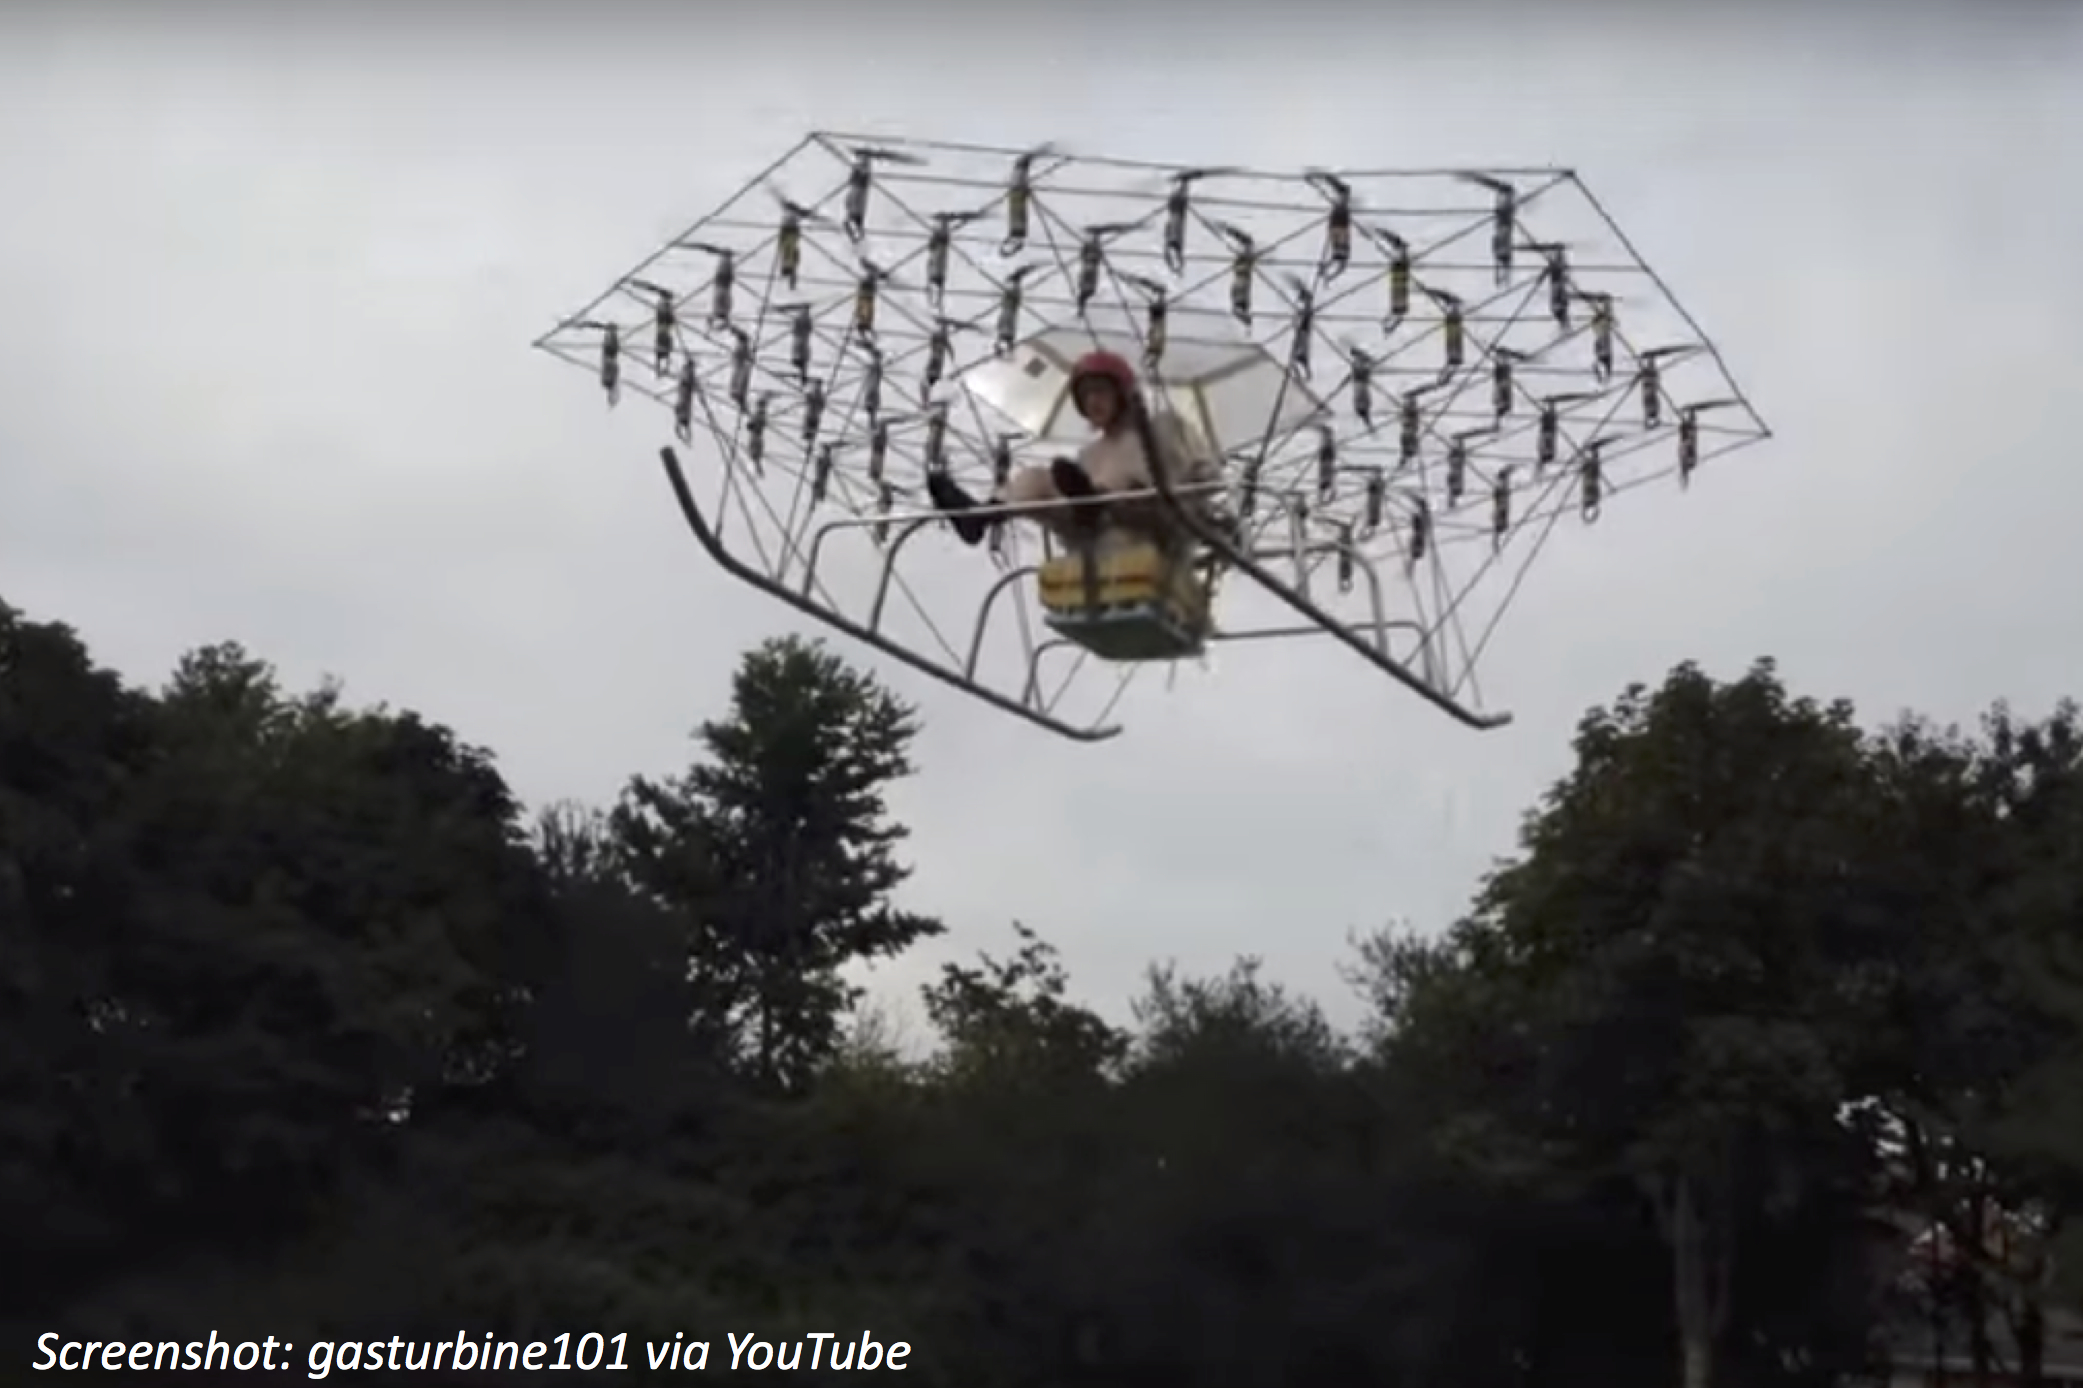 How to Make Your Own Helicopter